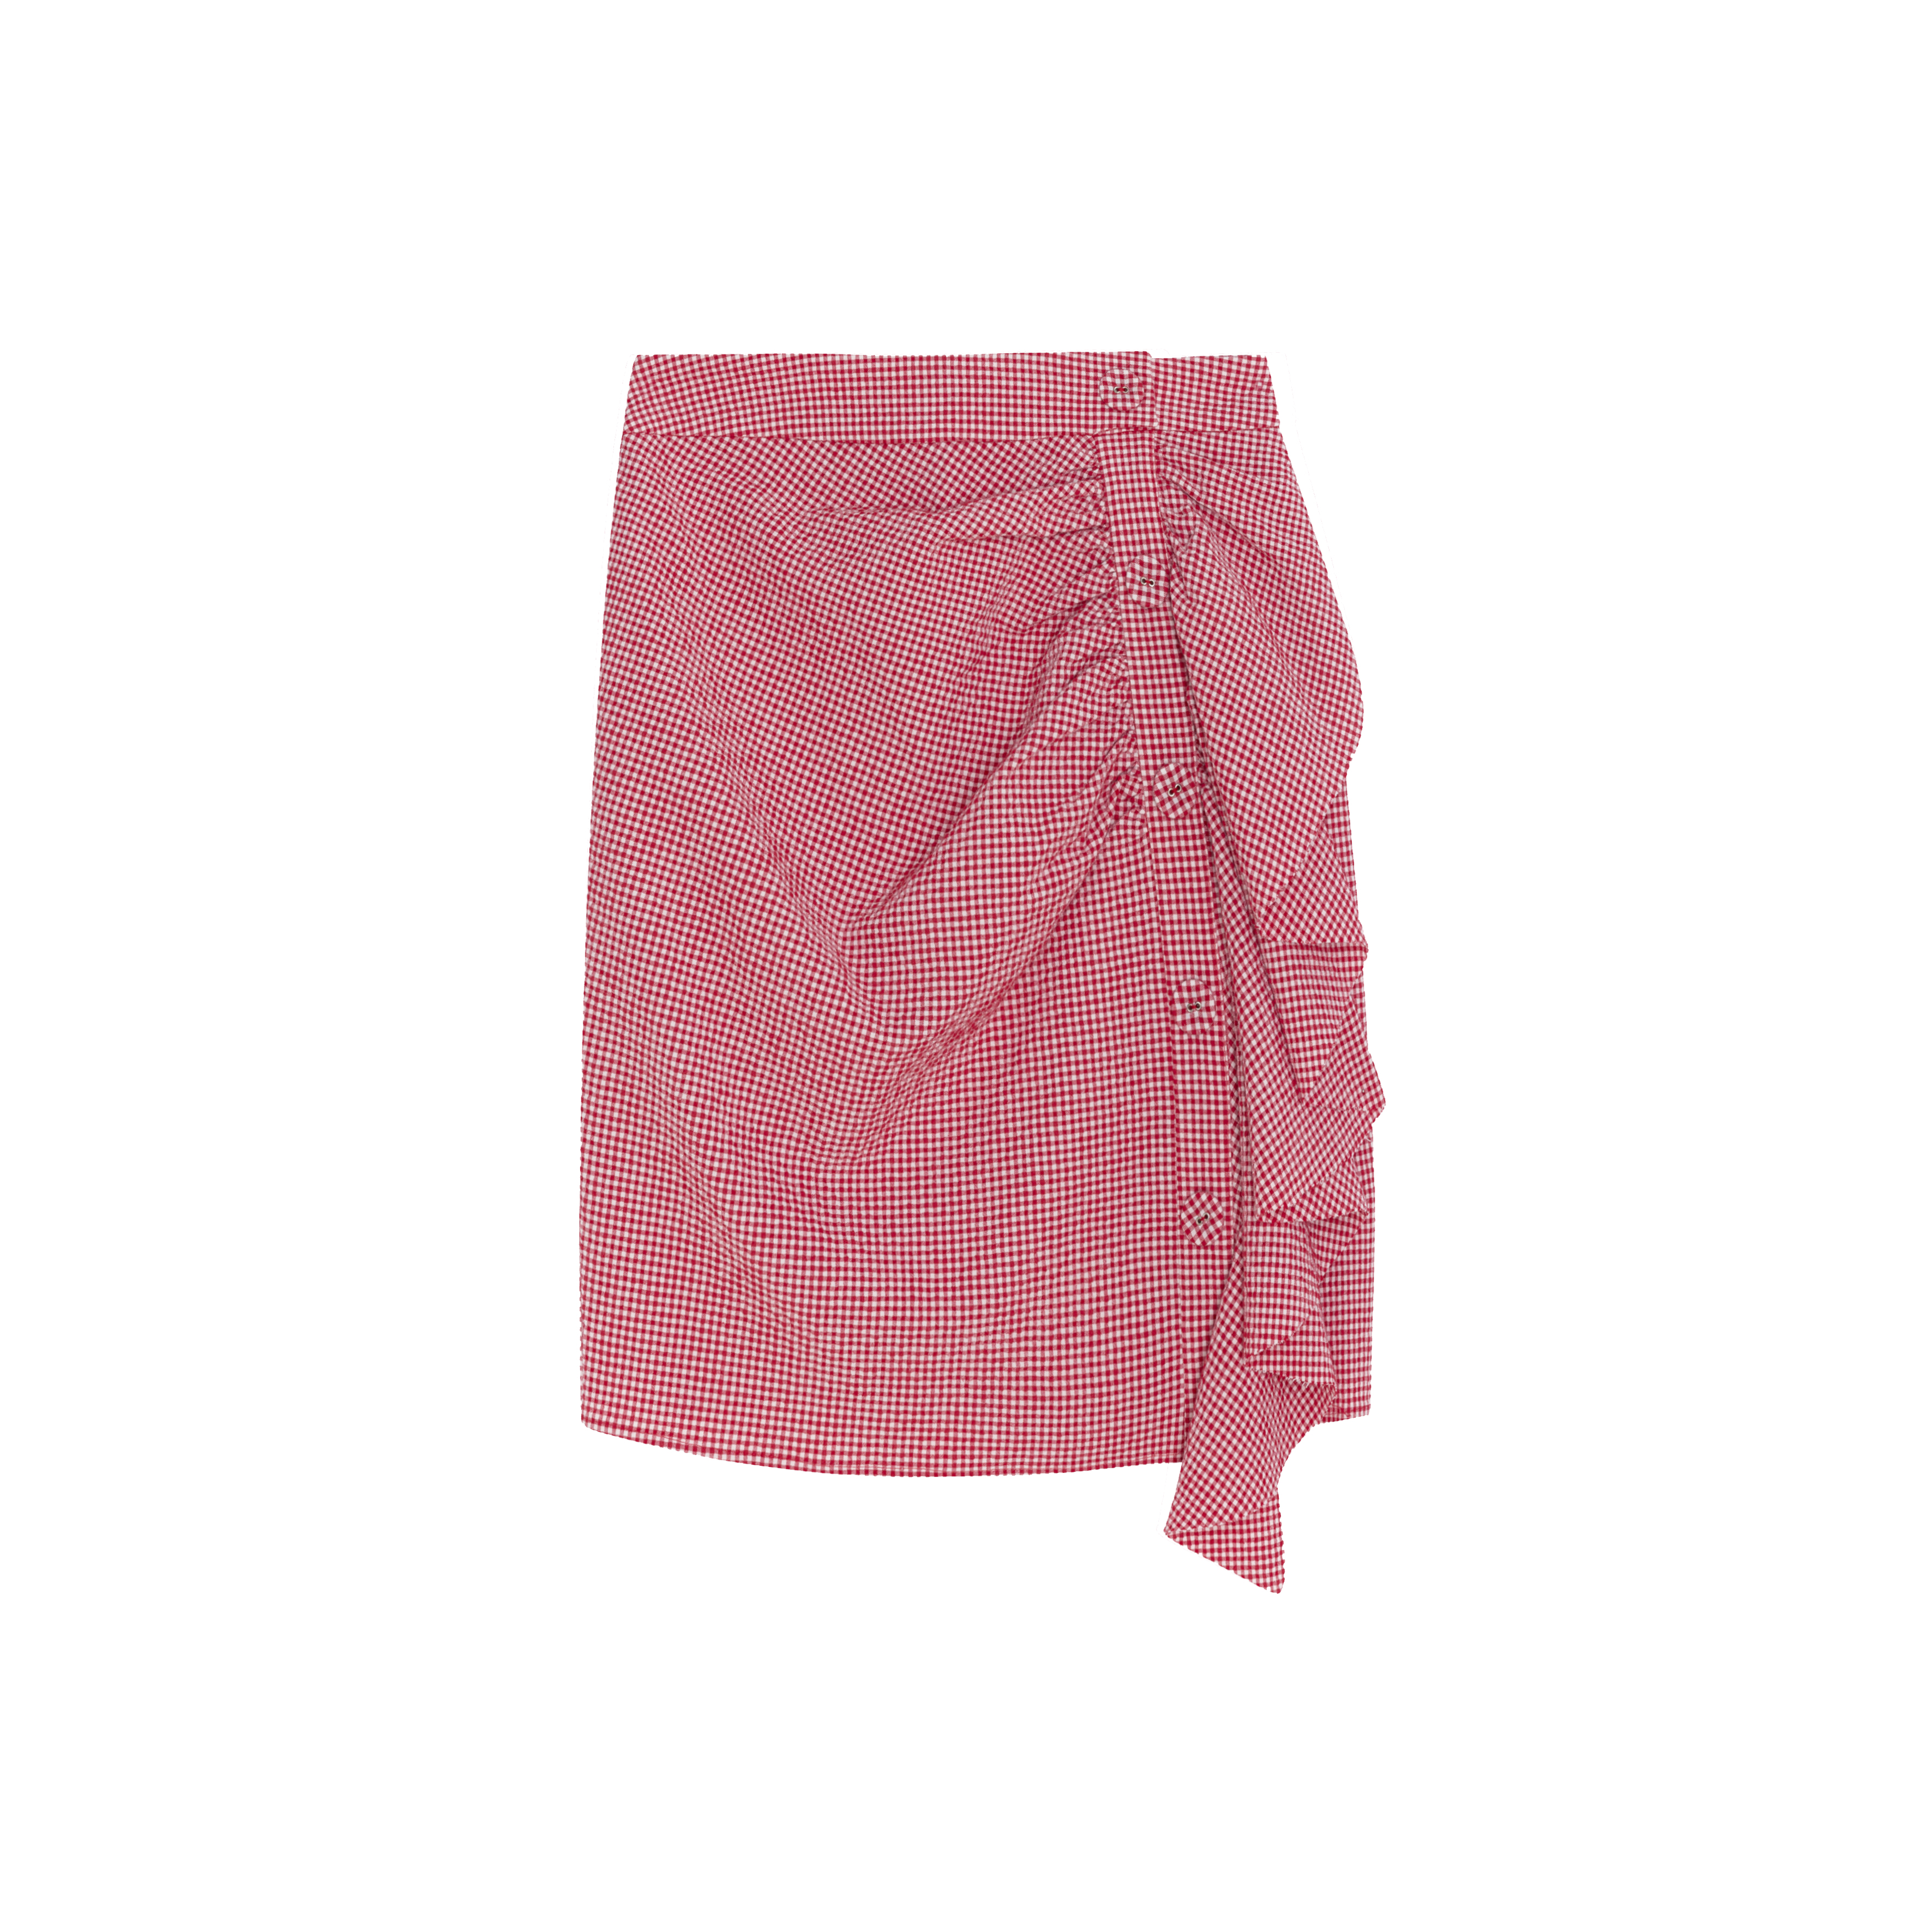 Picnic Skirt by Berta Cabestany on curated-crowd.com